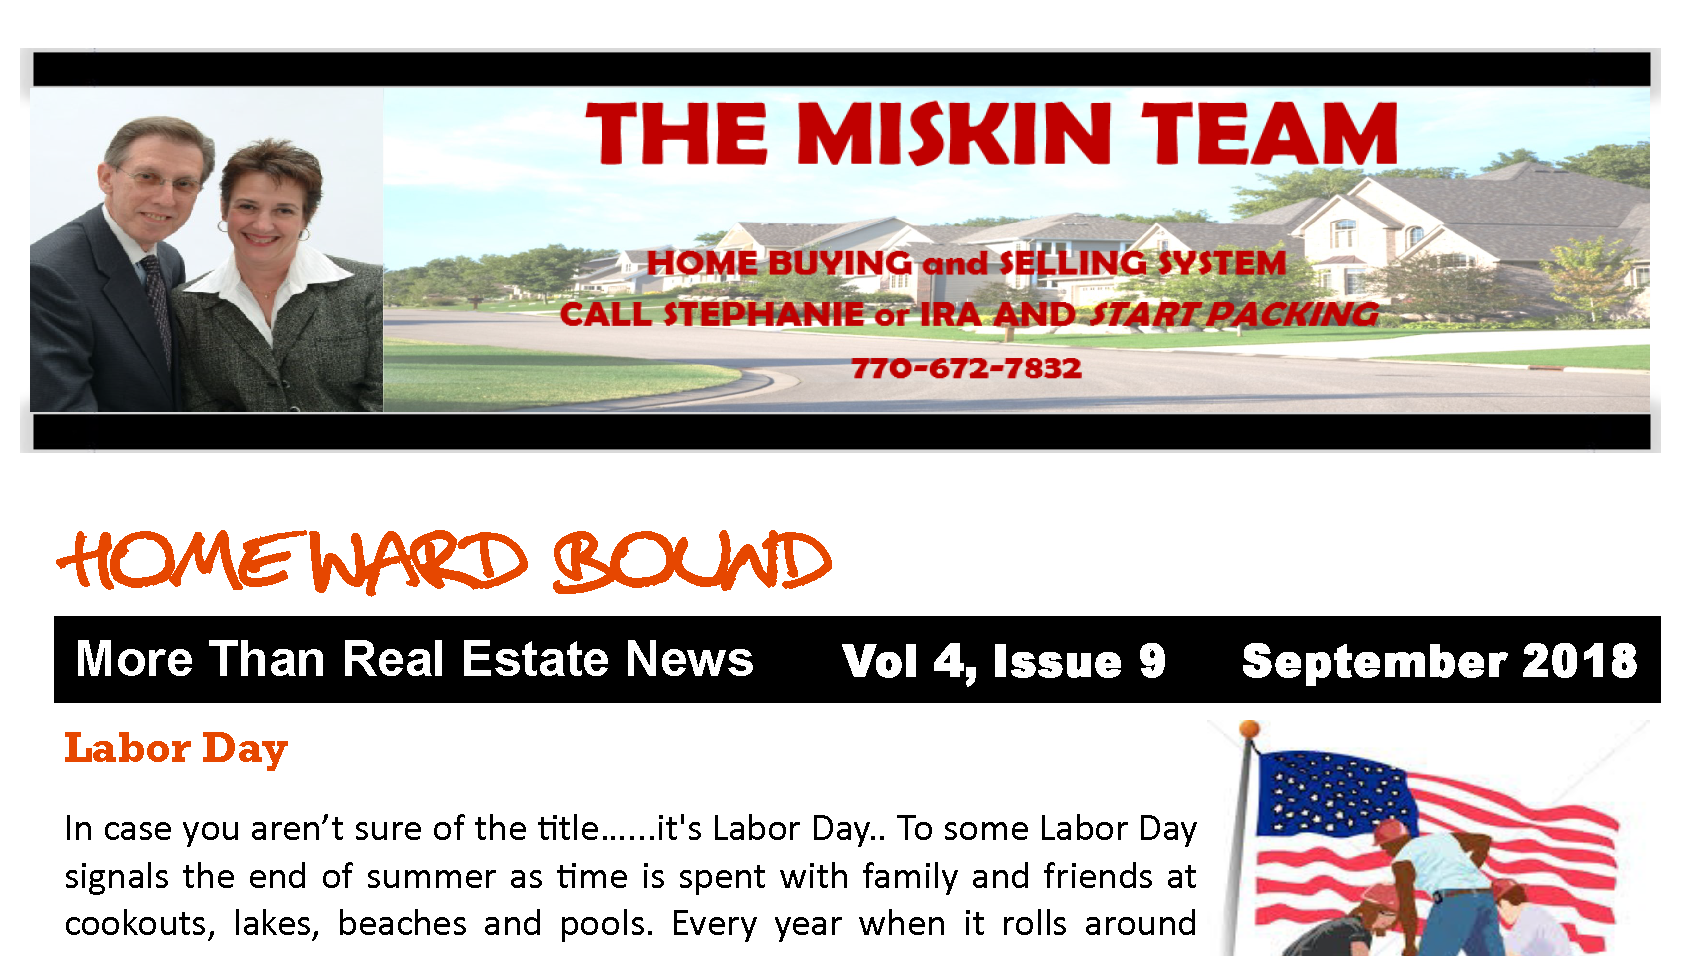 Home'Ward Bound Monthly Miskin Team Newsletter September 2018